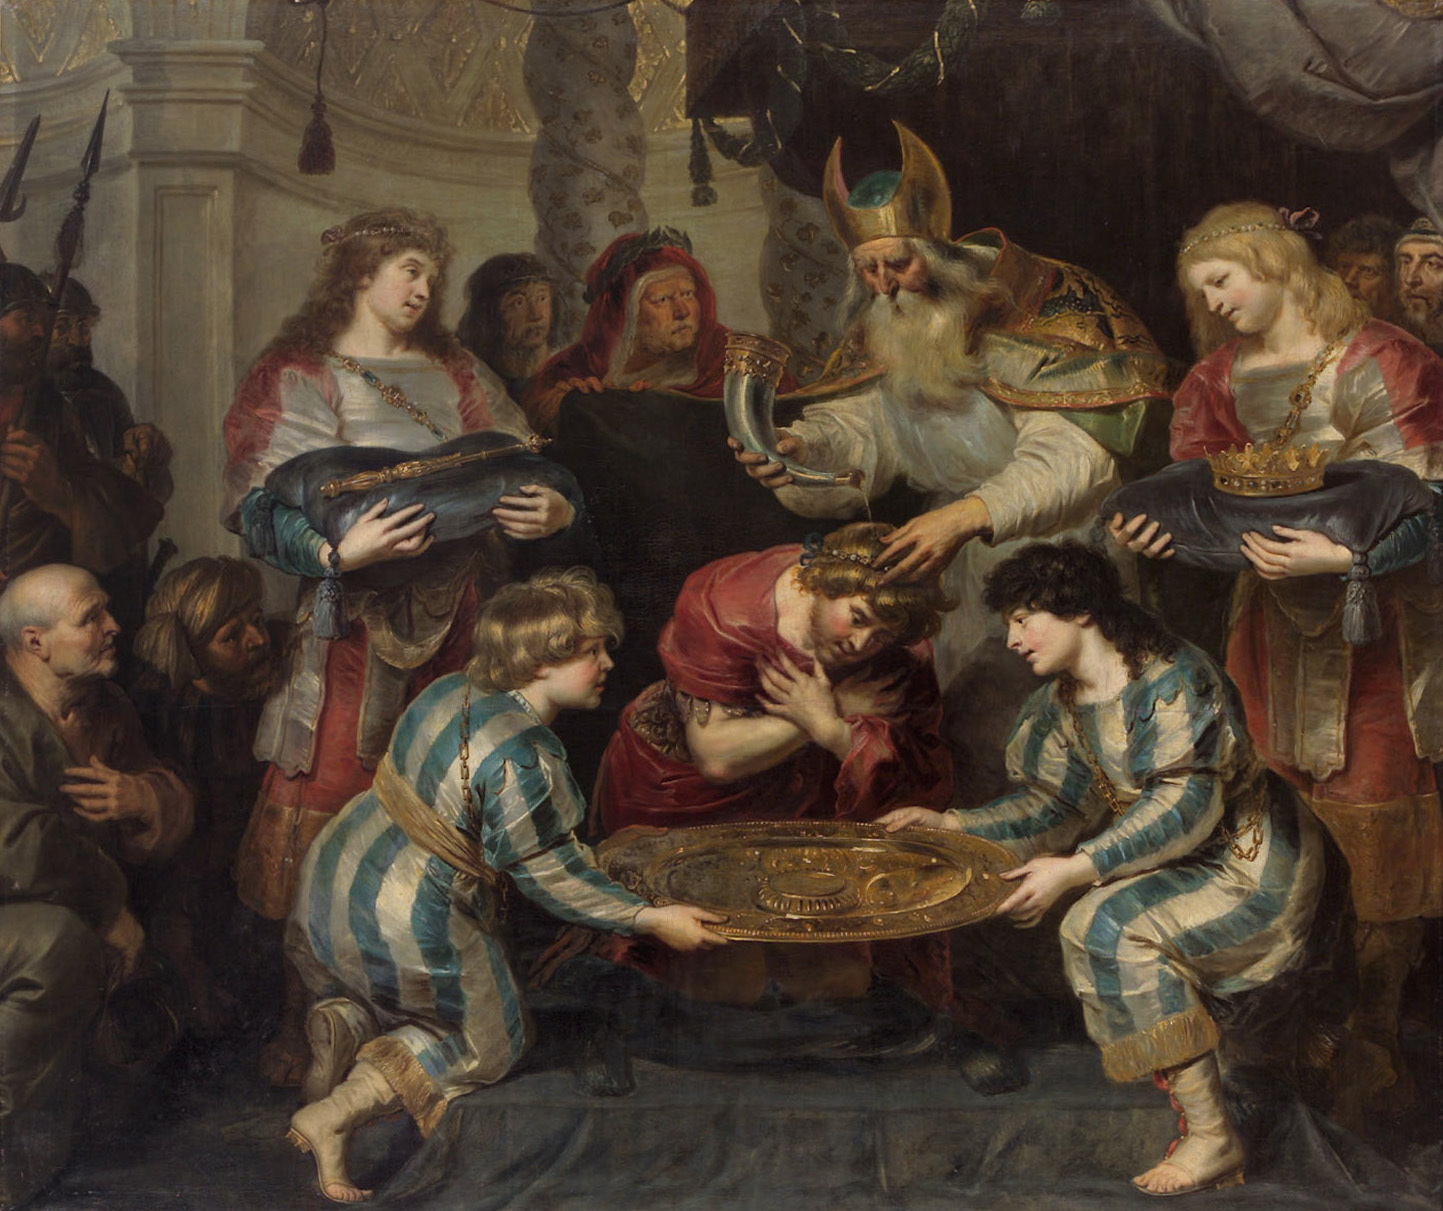 Cornelis_de_Vos_-_The_Anointing_of_Solomon